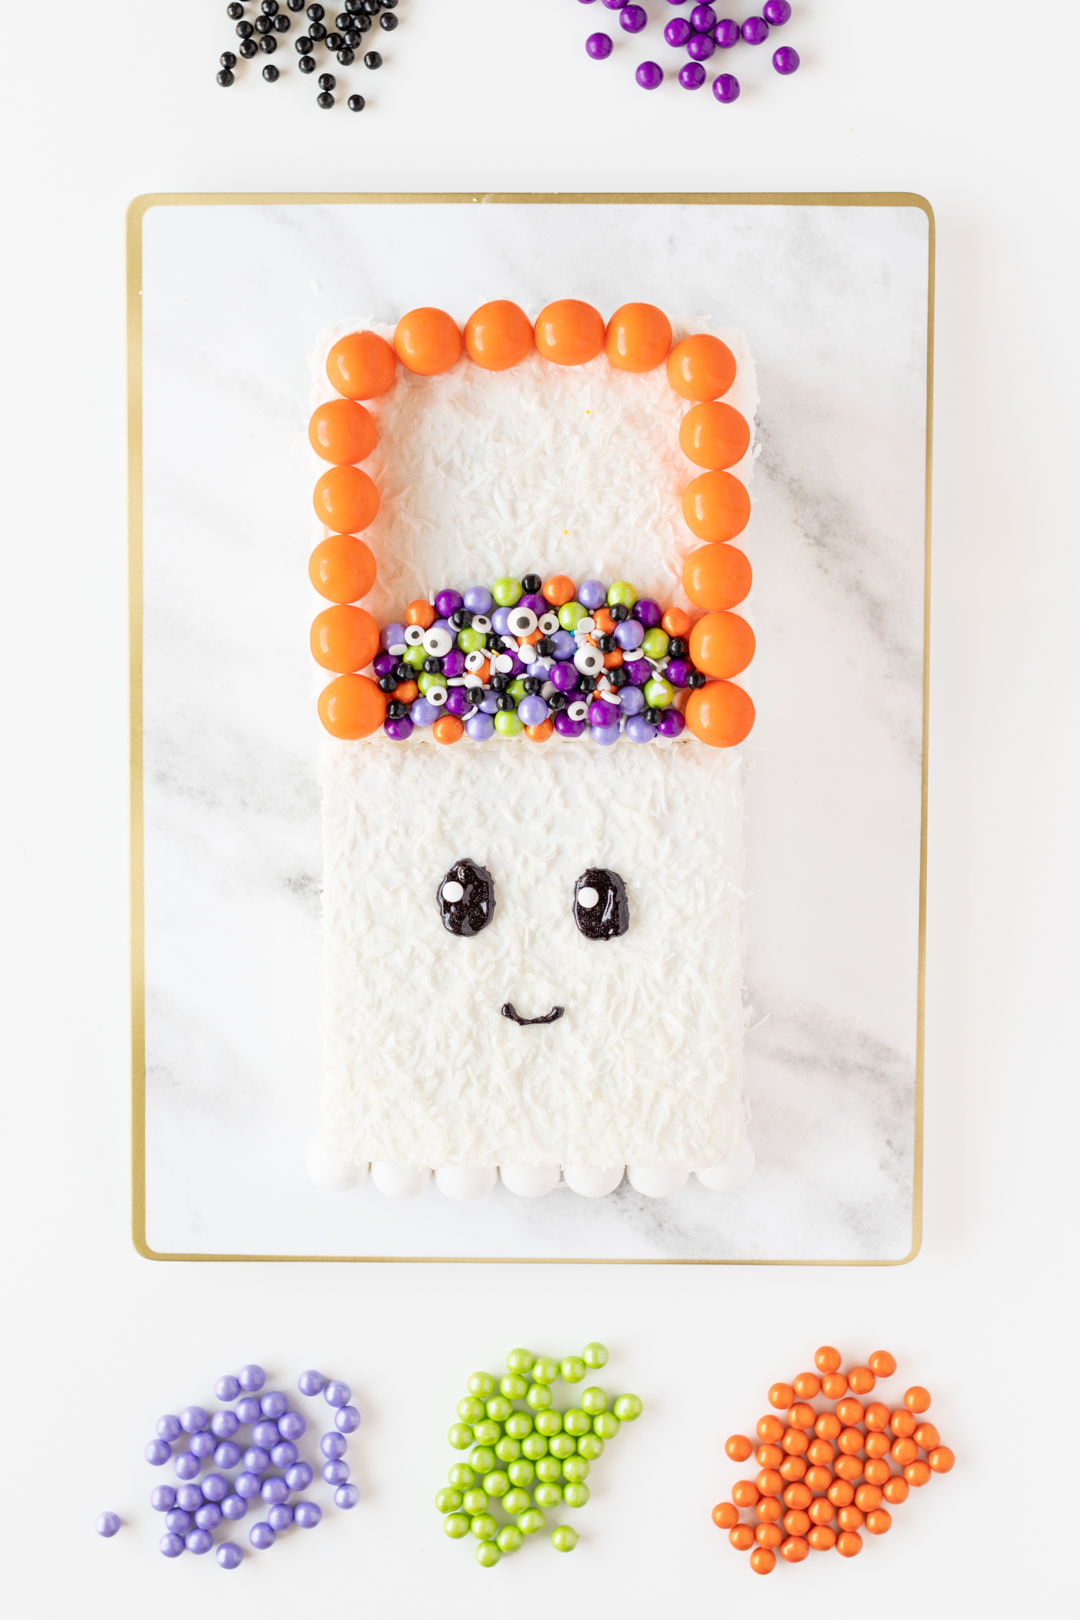 Cute ghost cake for trick or treat.